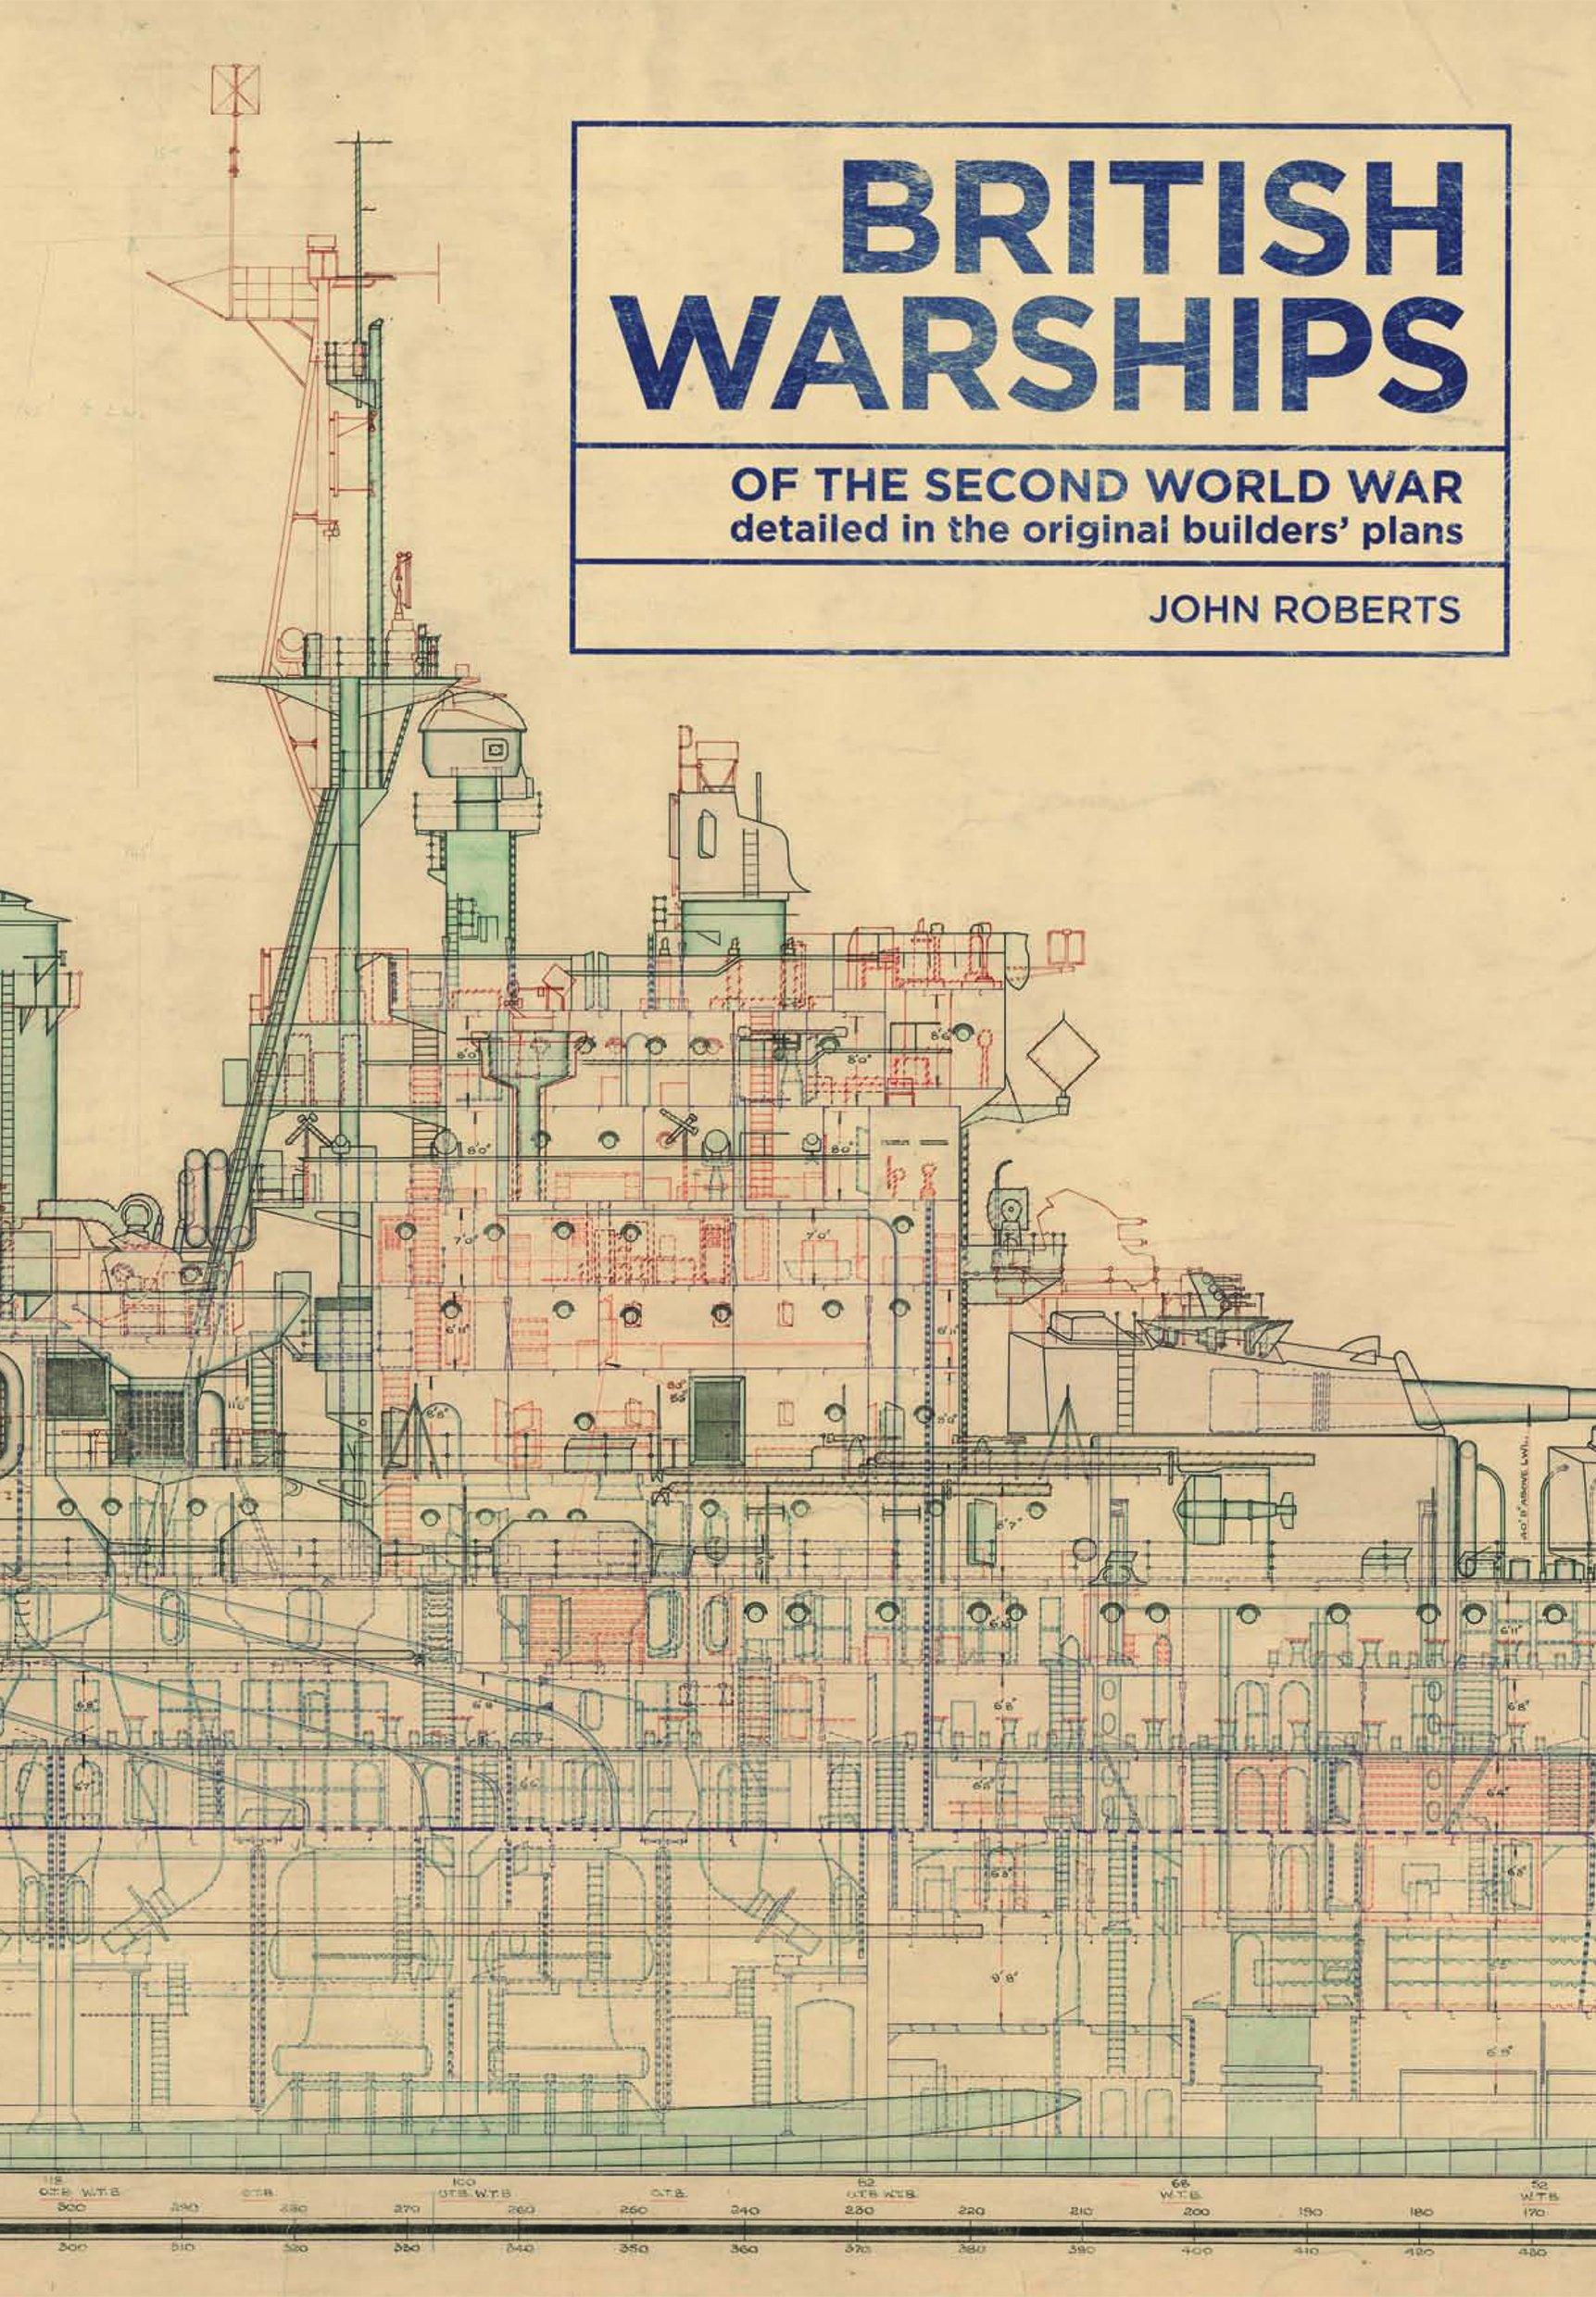 British Warships of the Second World War: Detailed in the Original Builders' Plans